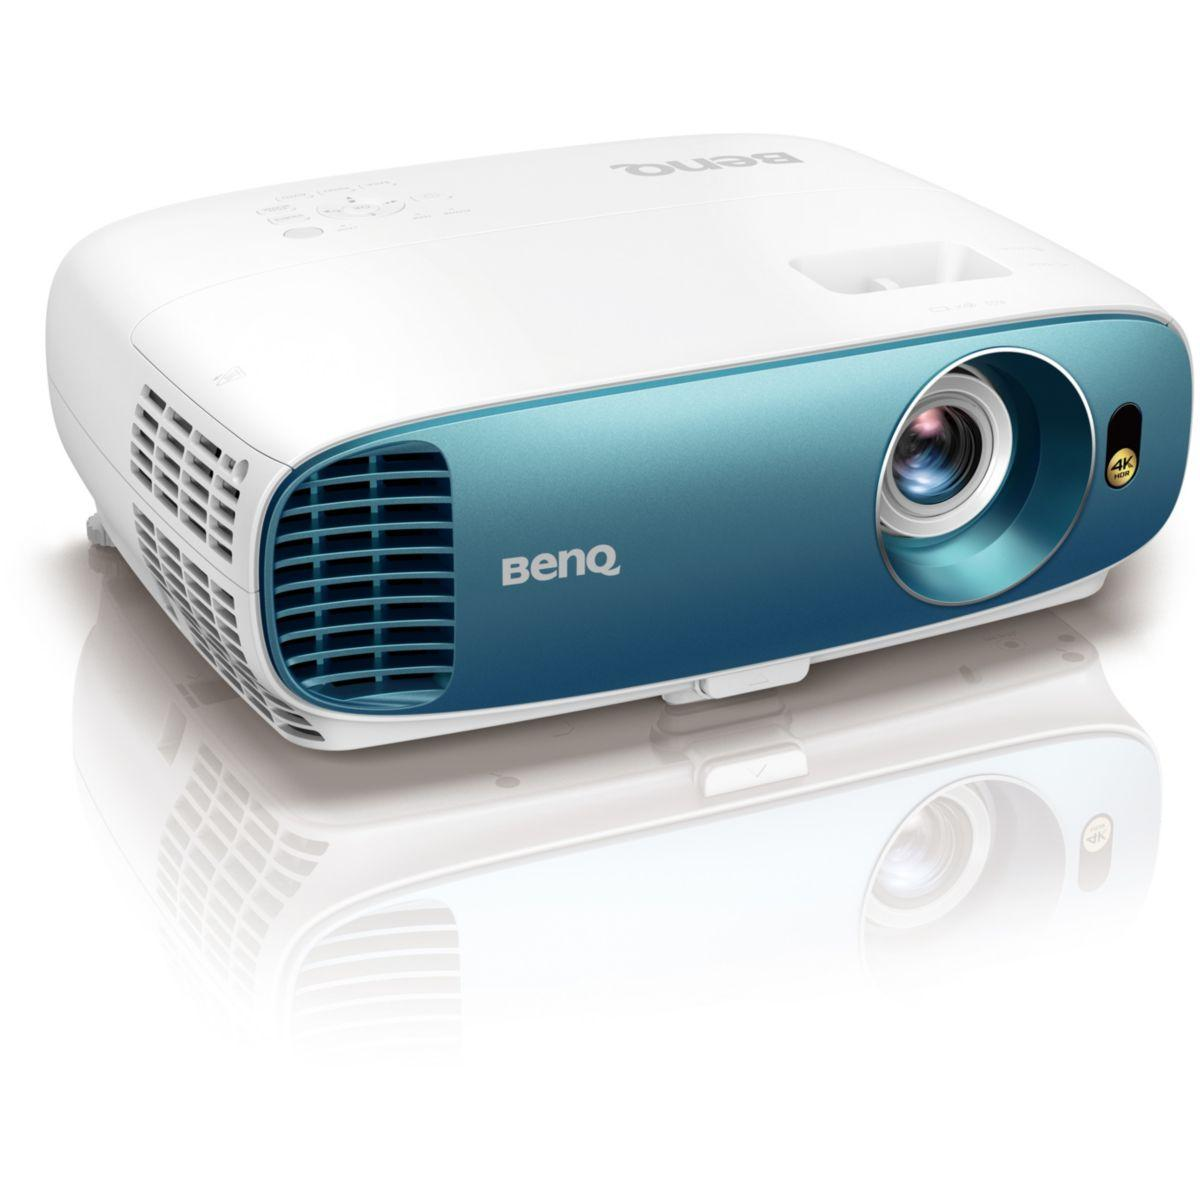 Vid�oprojecteur home cin�ma benq tk800 4k uhd (photo)